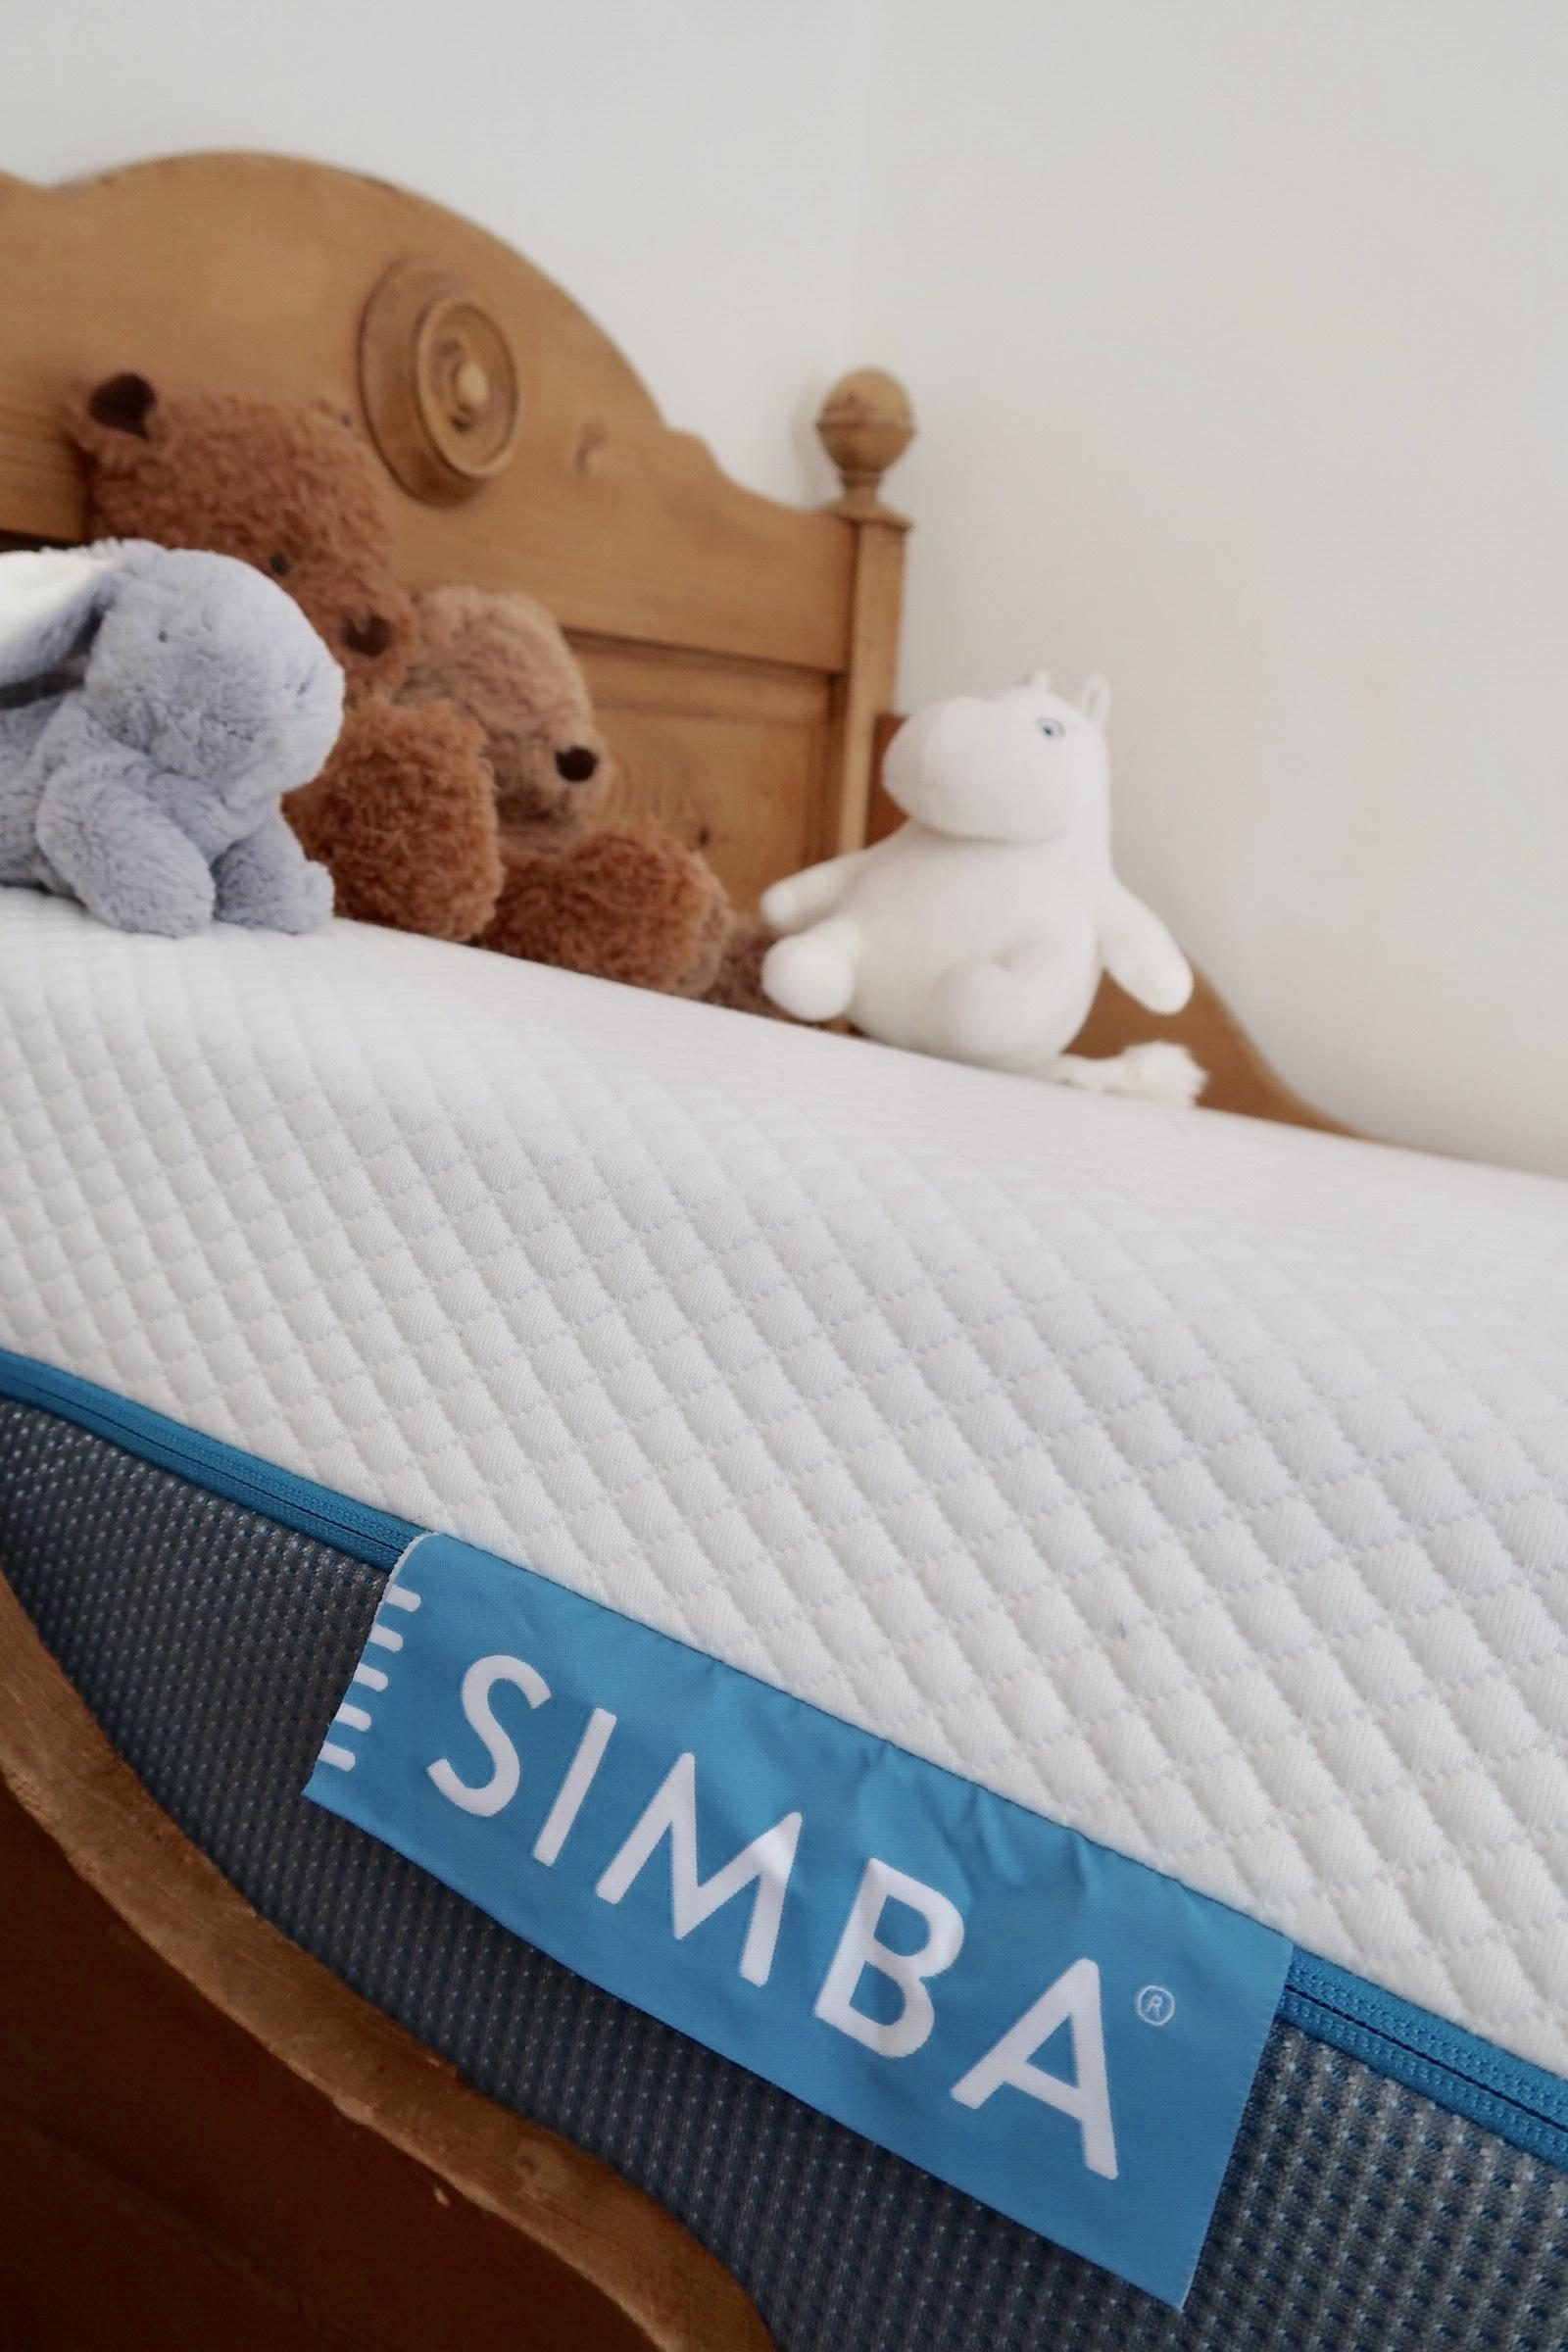 Getting the right mattress